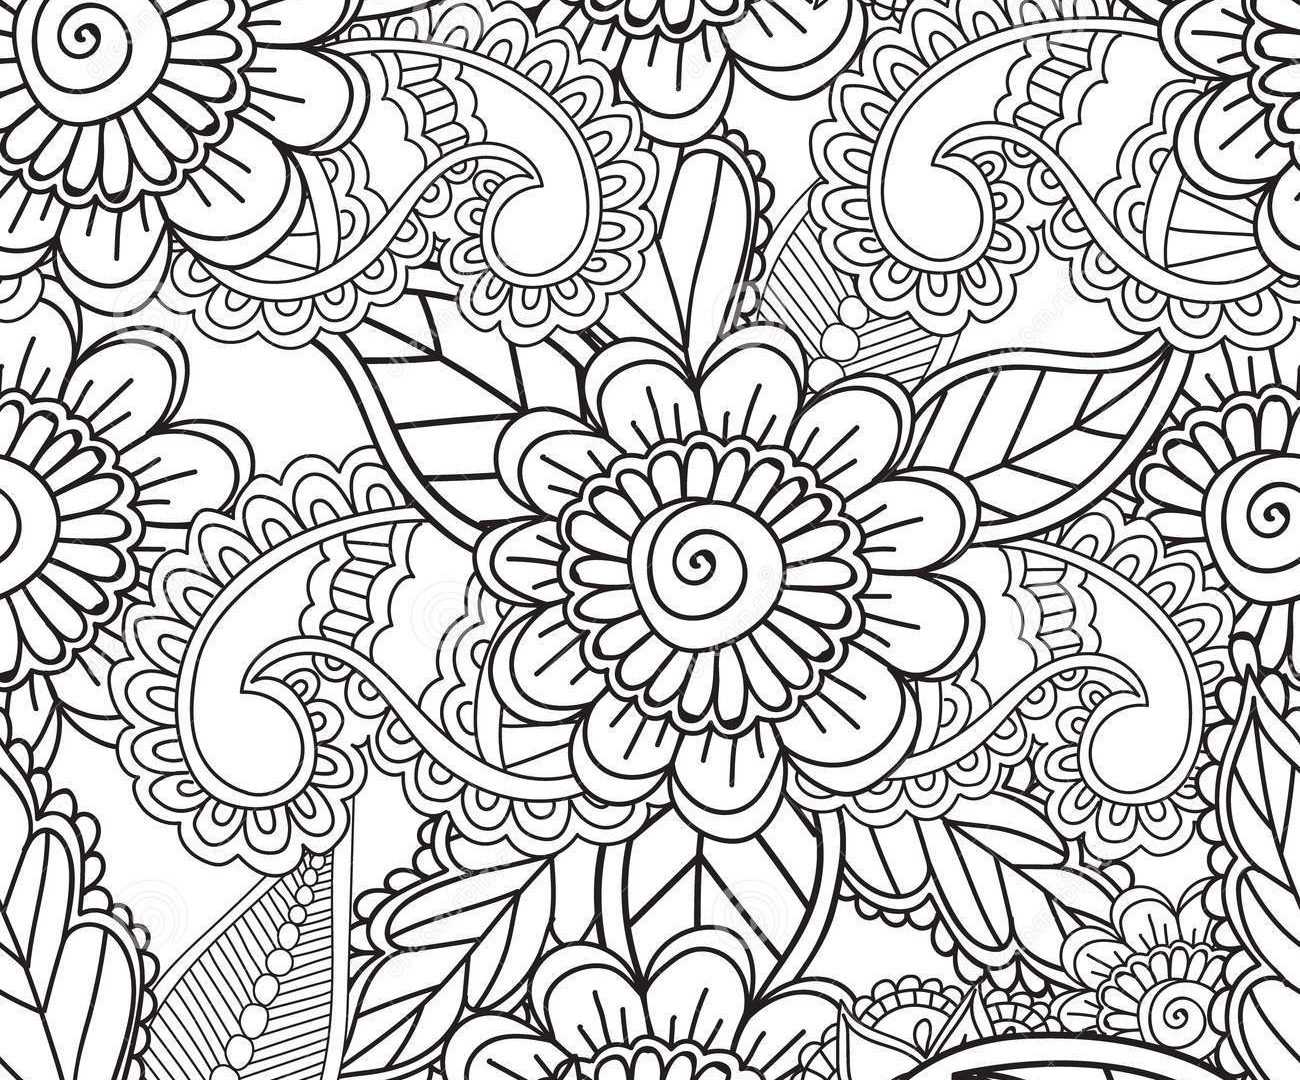 Coloring Pages Adults Free for Pdf Swear Words Sheetsables Colouring Gallery Of Snowflake Coloring Pages for Adults Coloring Pages Inspiring Printable